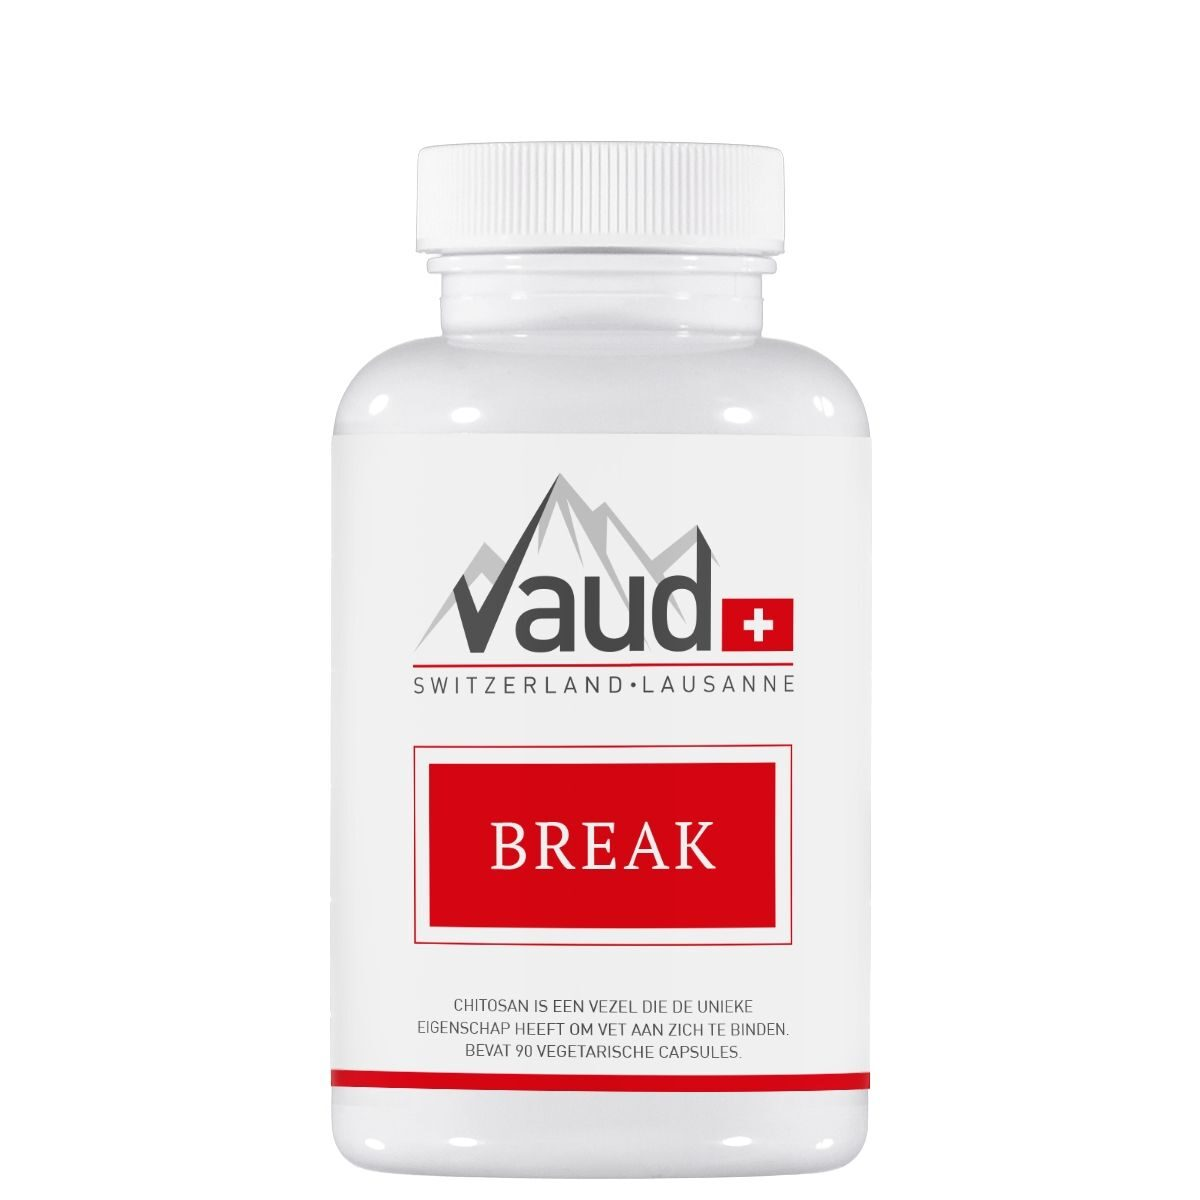 break-vaud